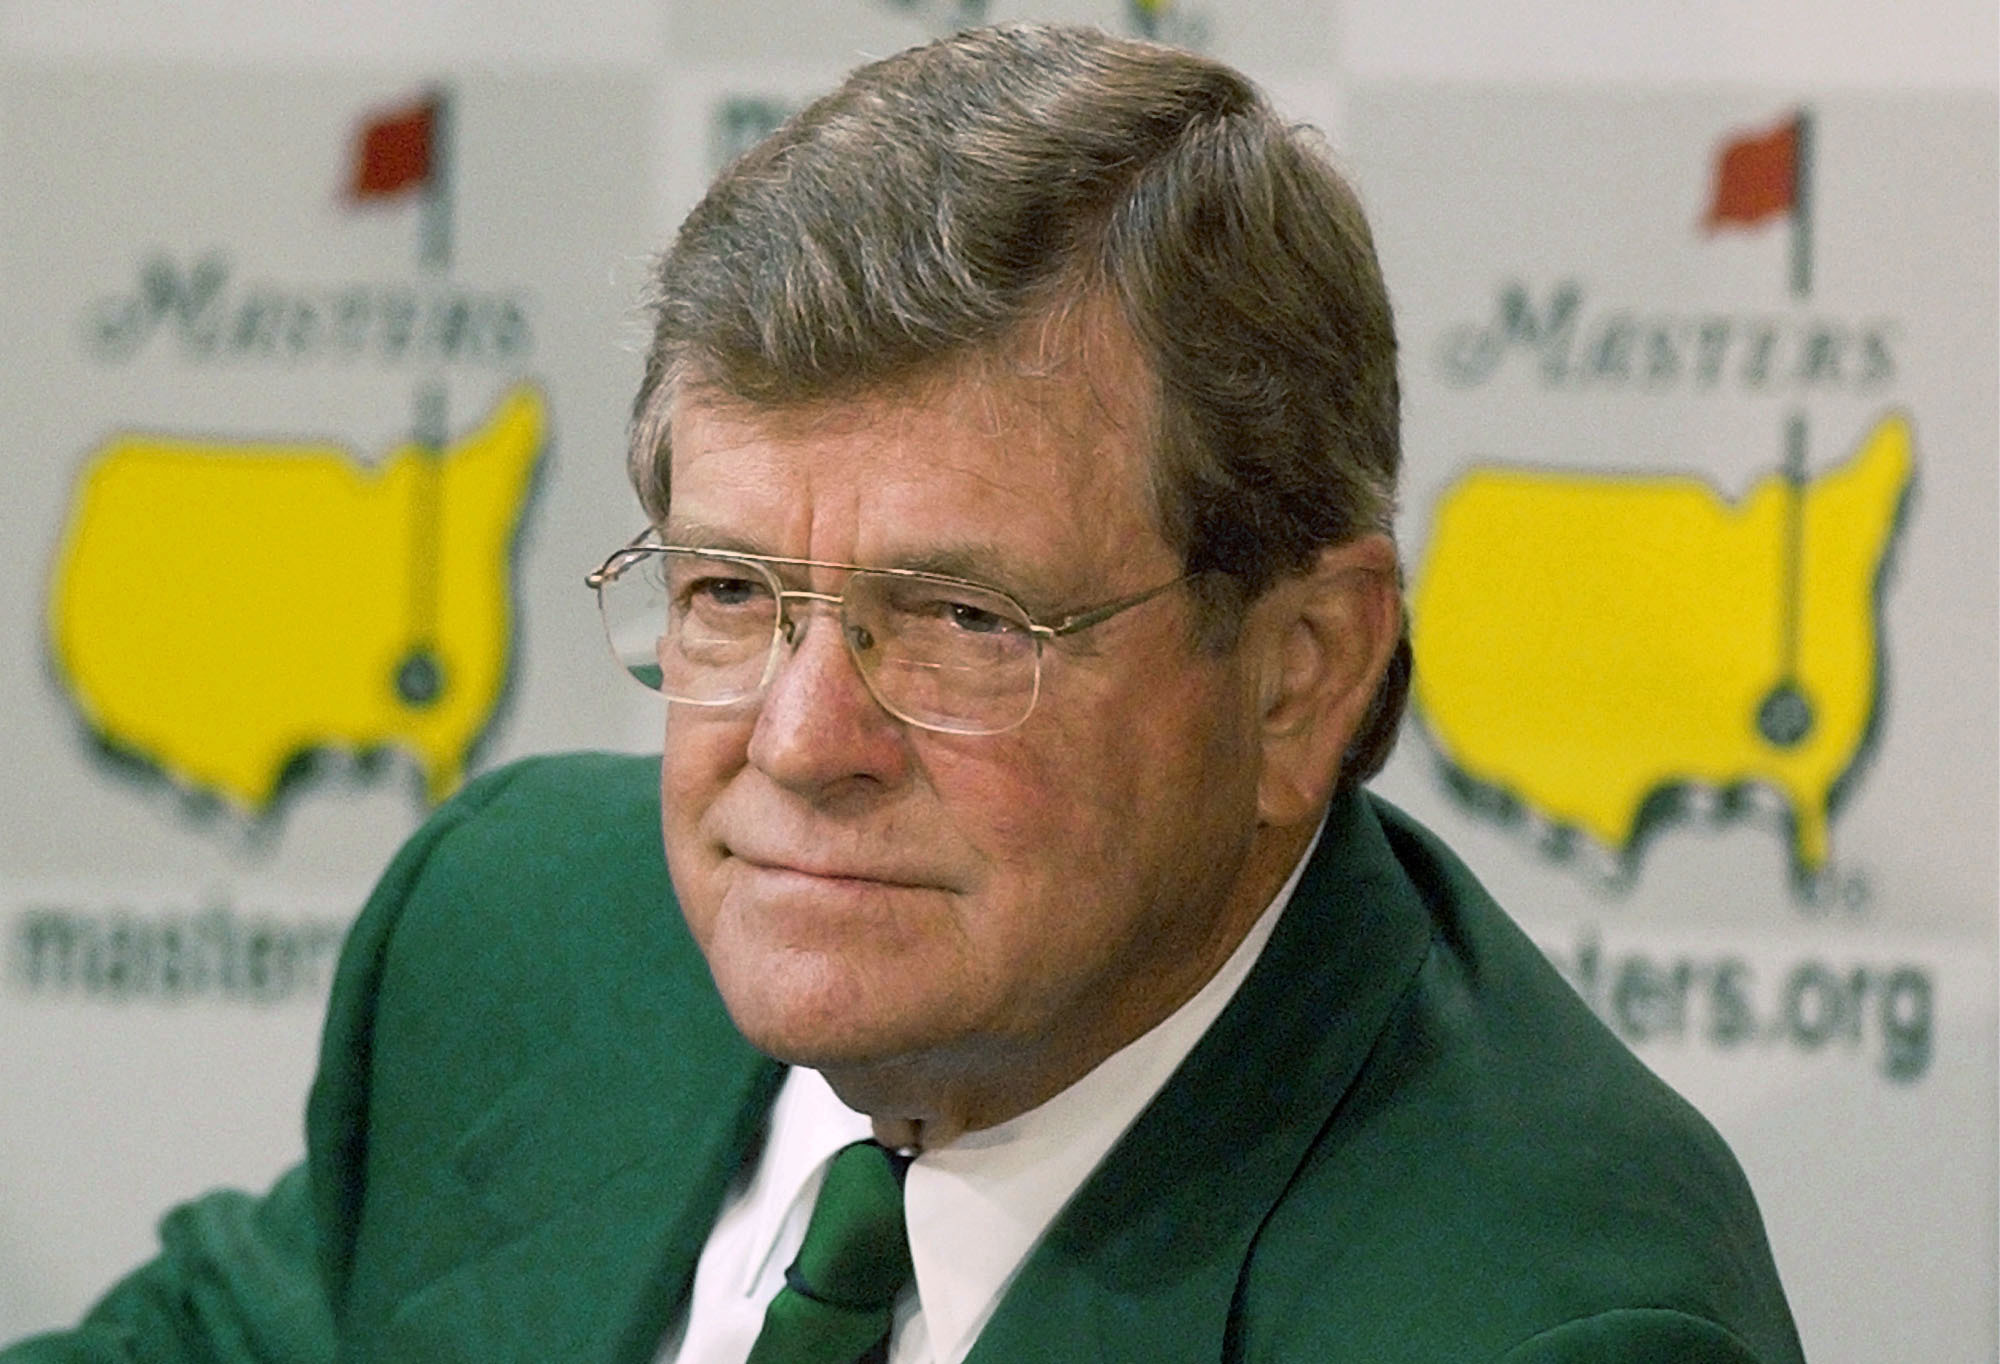 FILE - This April 10, 2002, file photo shows Hootie Johnson, then-chairman of the Augusta National Golf Club, during a news conference at the Augusta National Golf Club in Augusta, Ga. Hootie Johnson, the South Carolina banker who as chairman of Augusta N